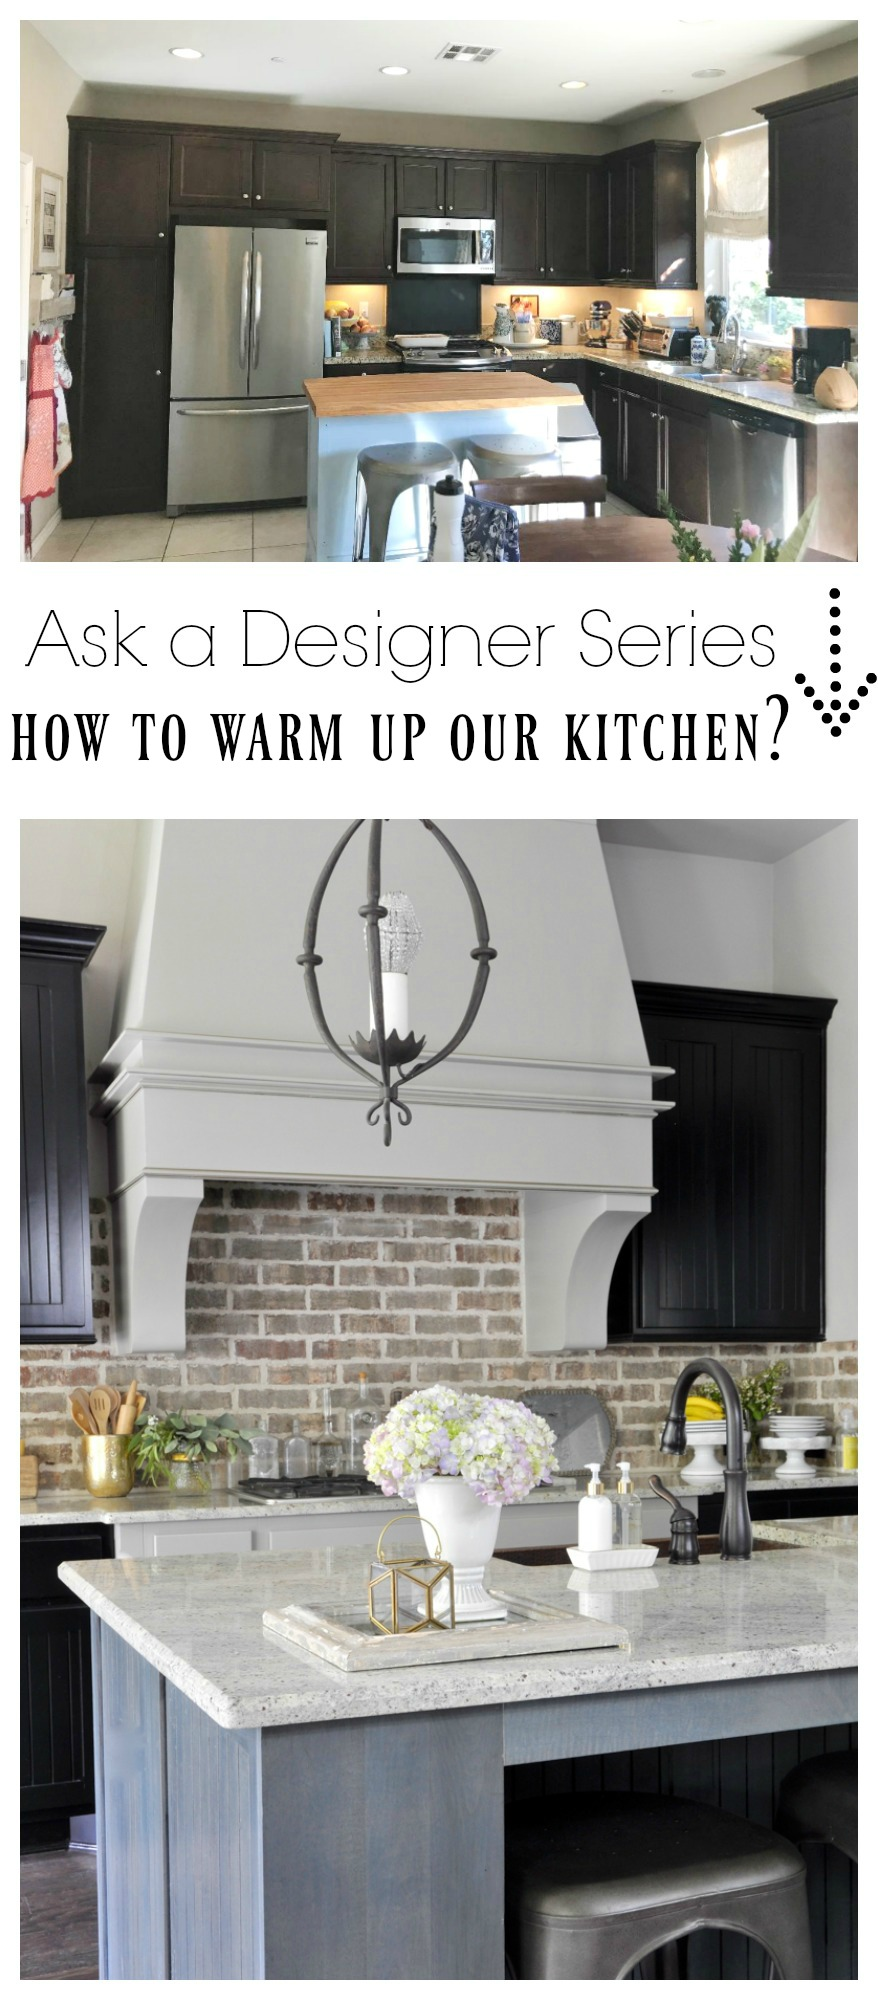 Ask a Designer Series- How To Warm Up A Kitchen